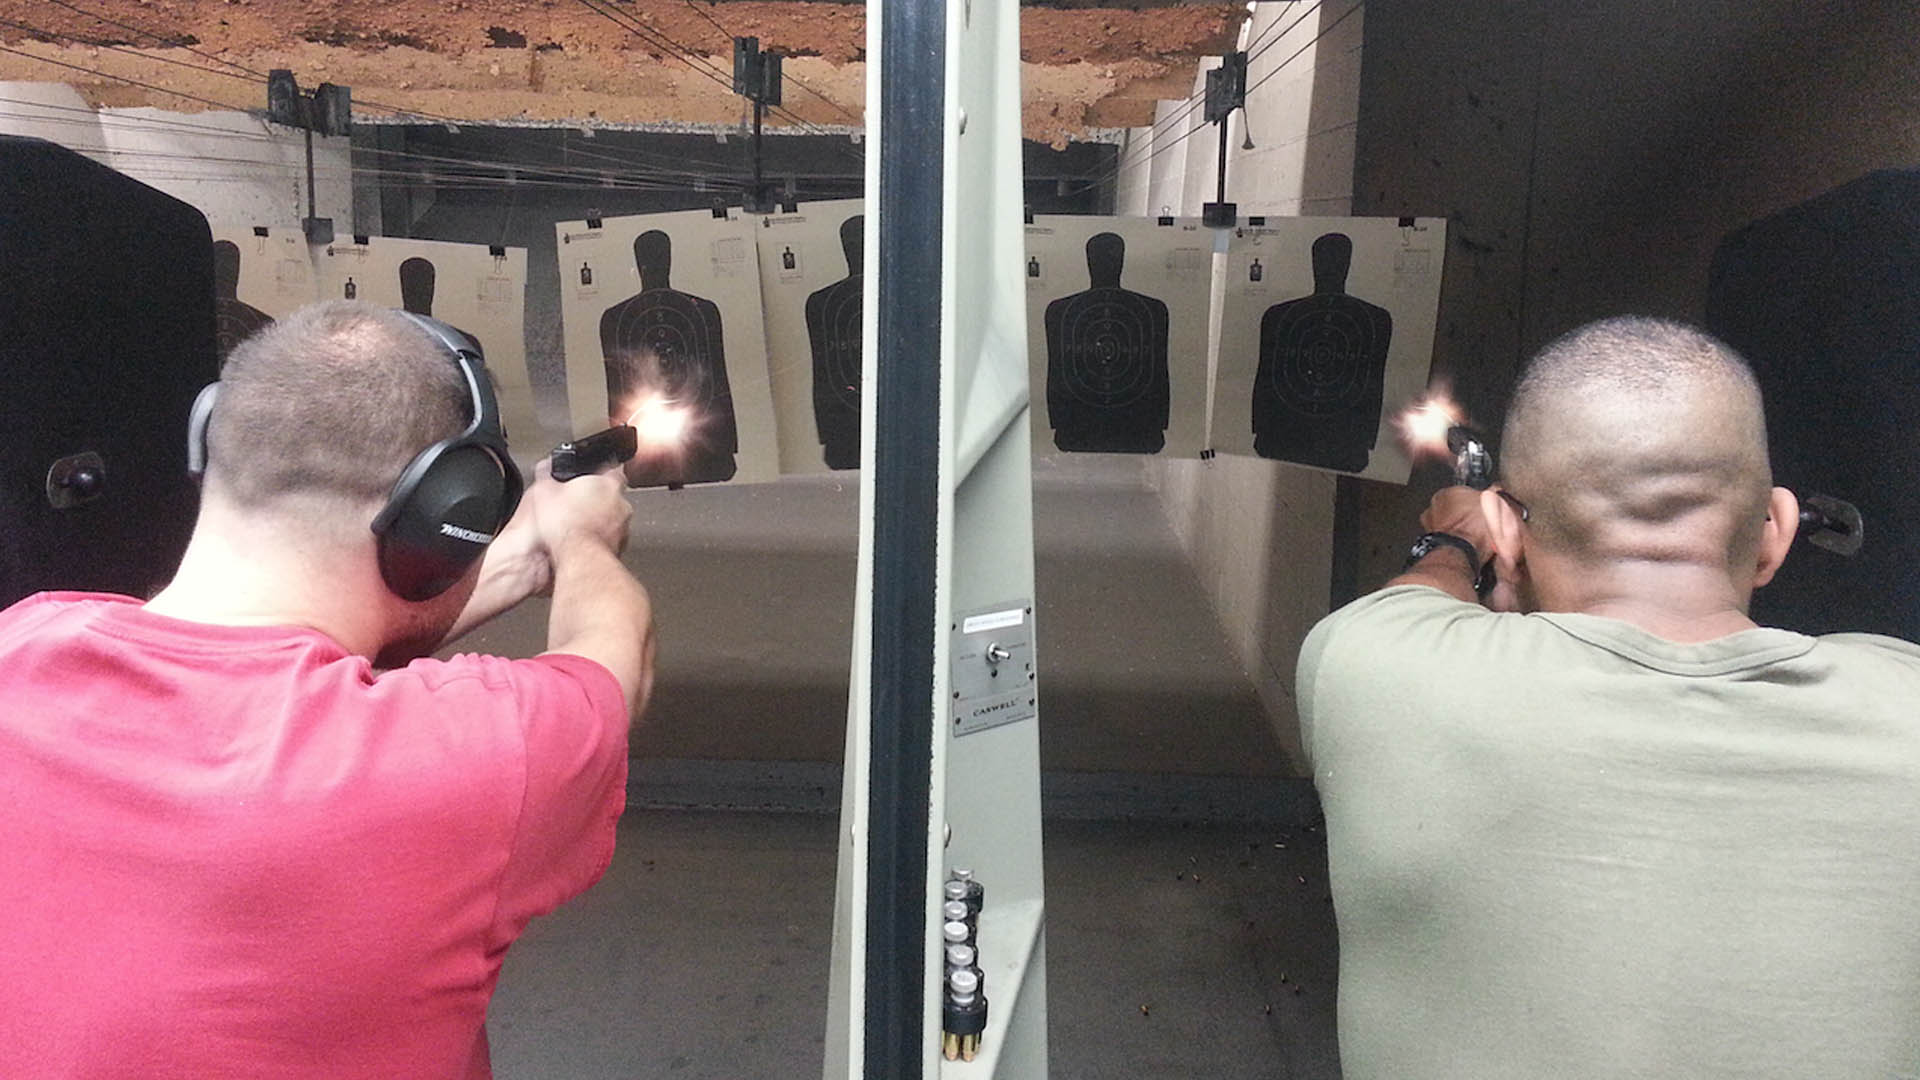 Armed Security G Course Florida Security Firearms Training